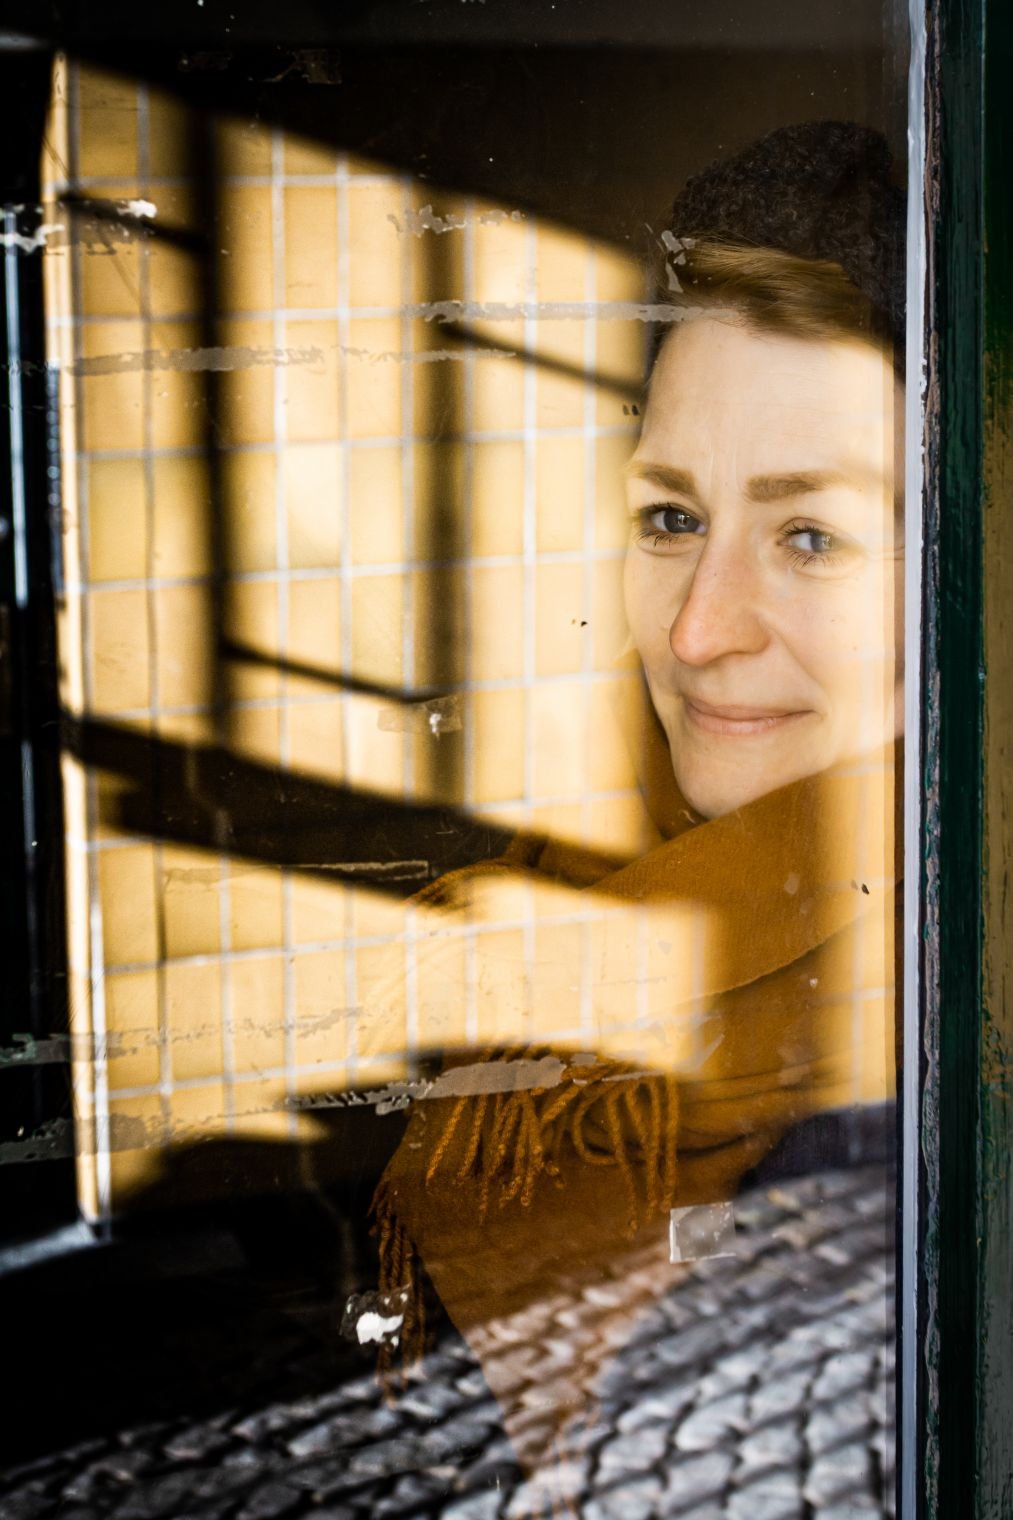 portrait of a woman - reflection in window